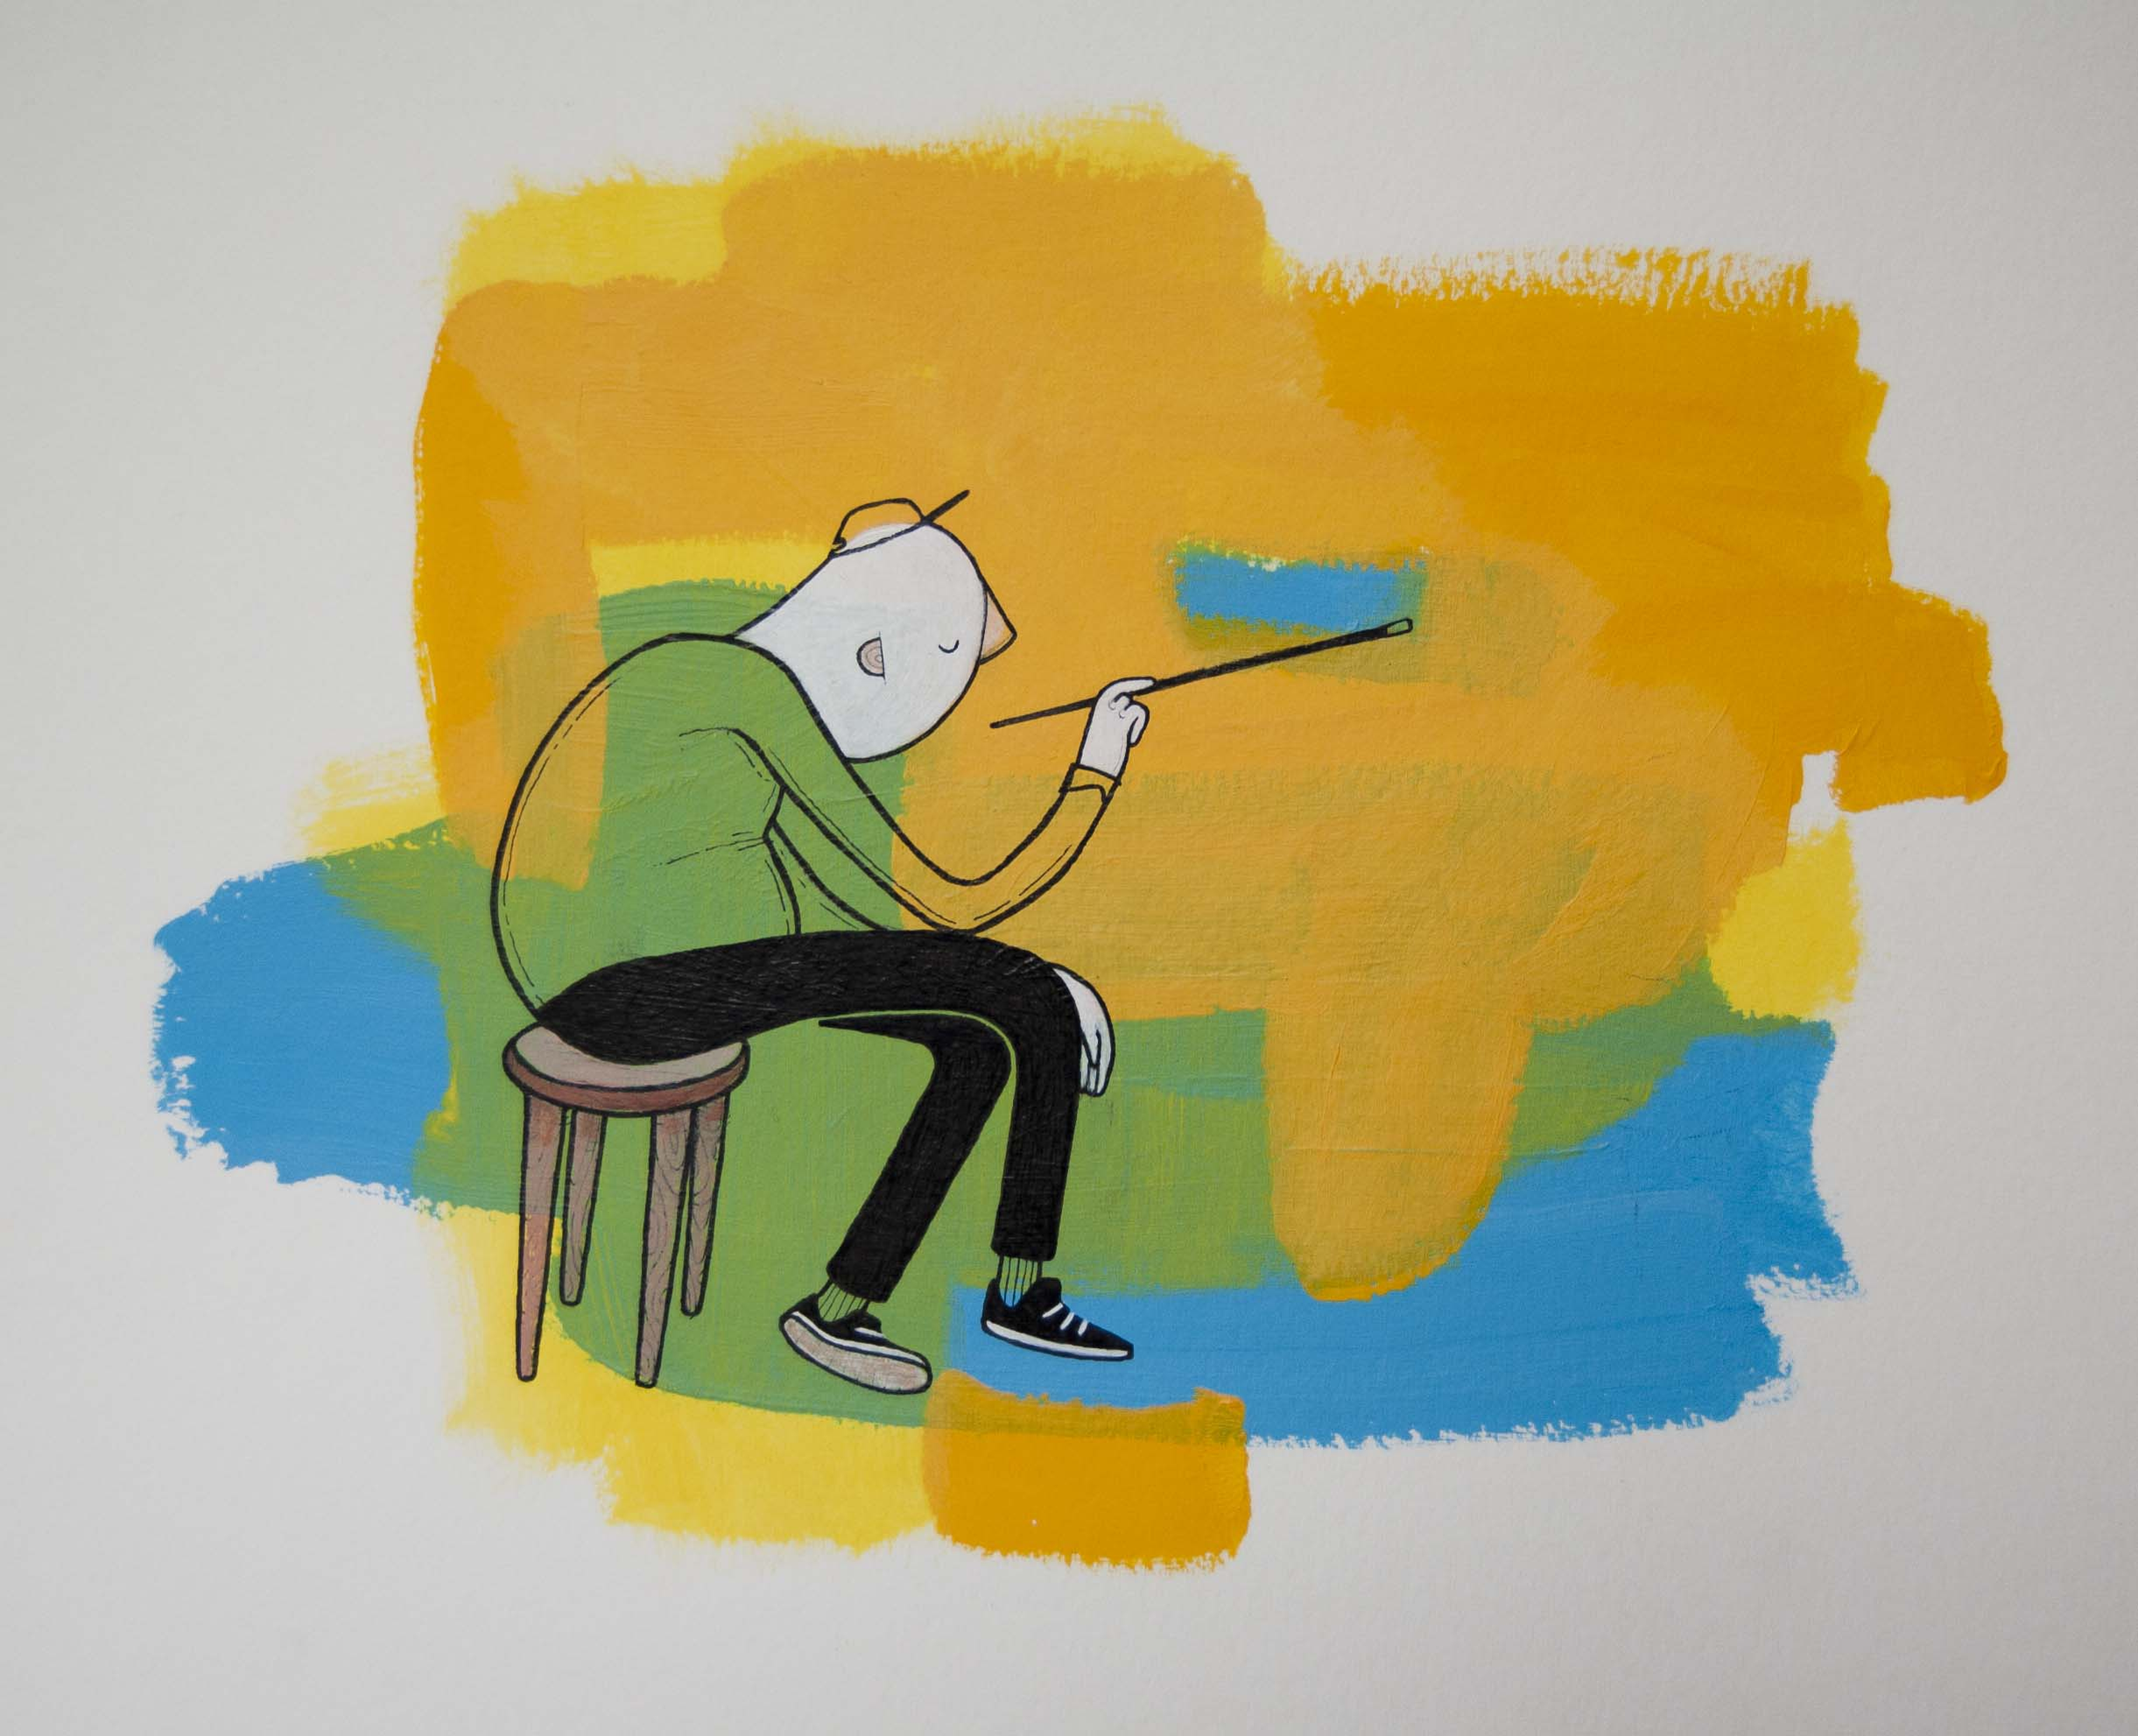 The Painter (II), 2013 Ink and Acrylic on Paper